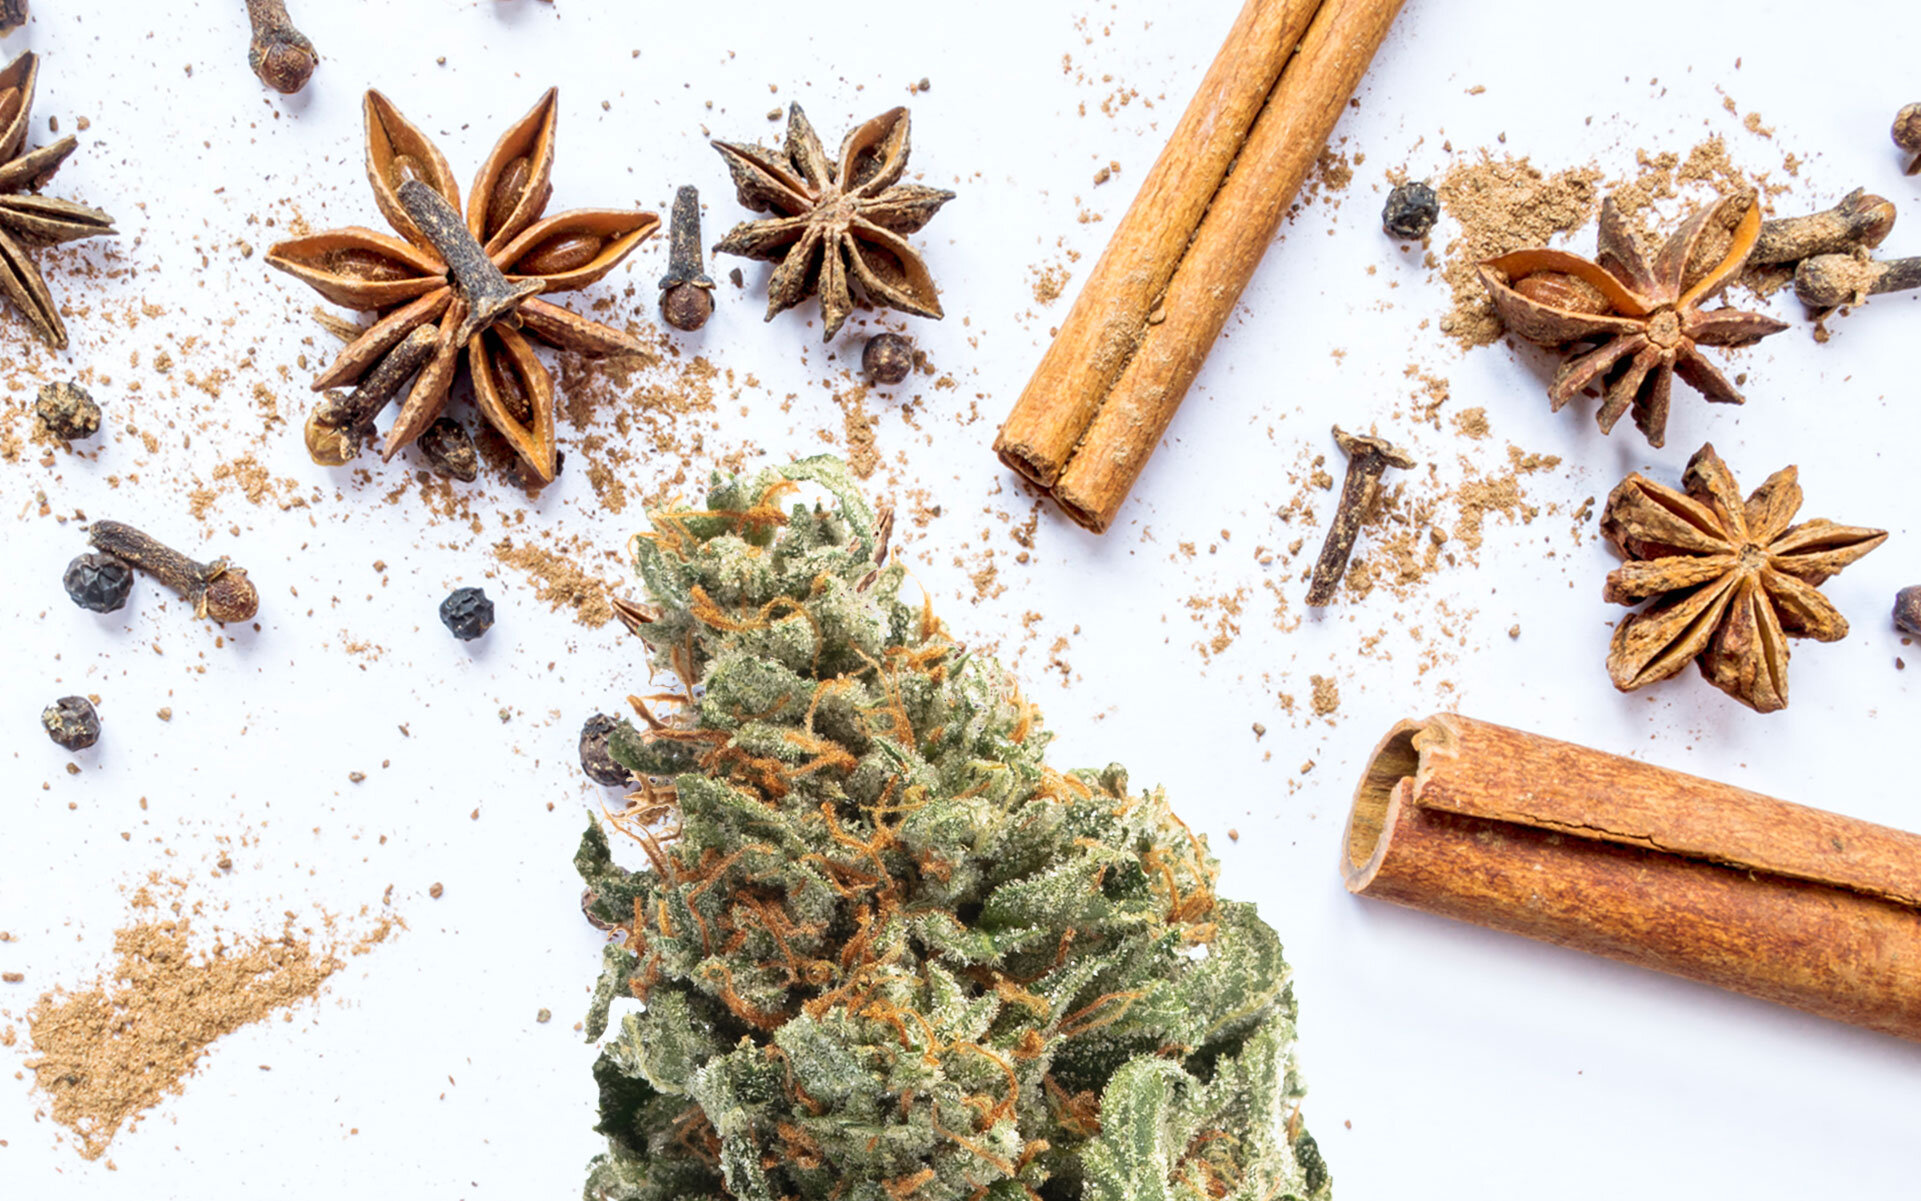 strains-for-people-who-like-spiced-terpenes.jpg